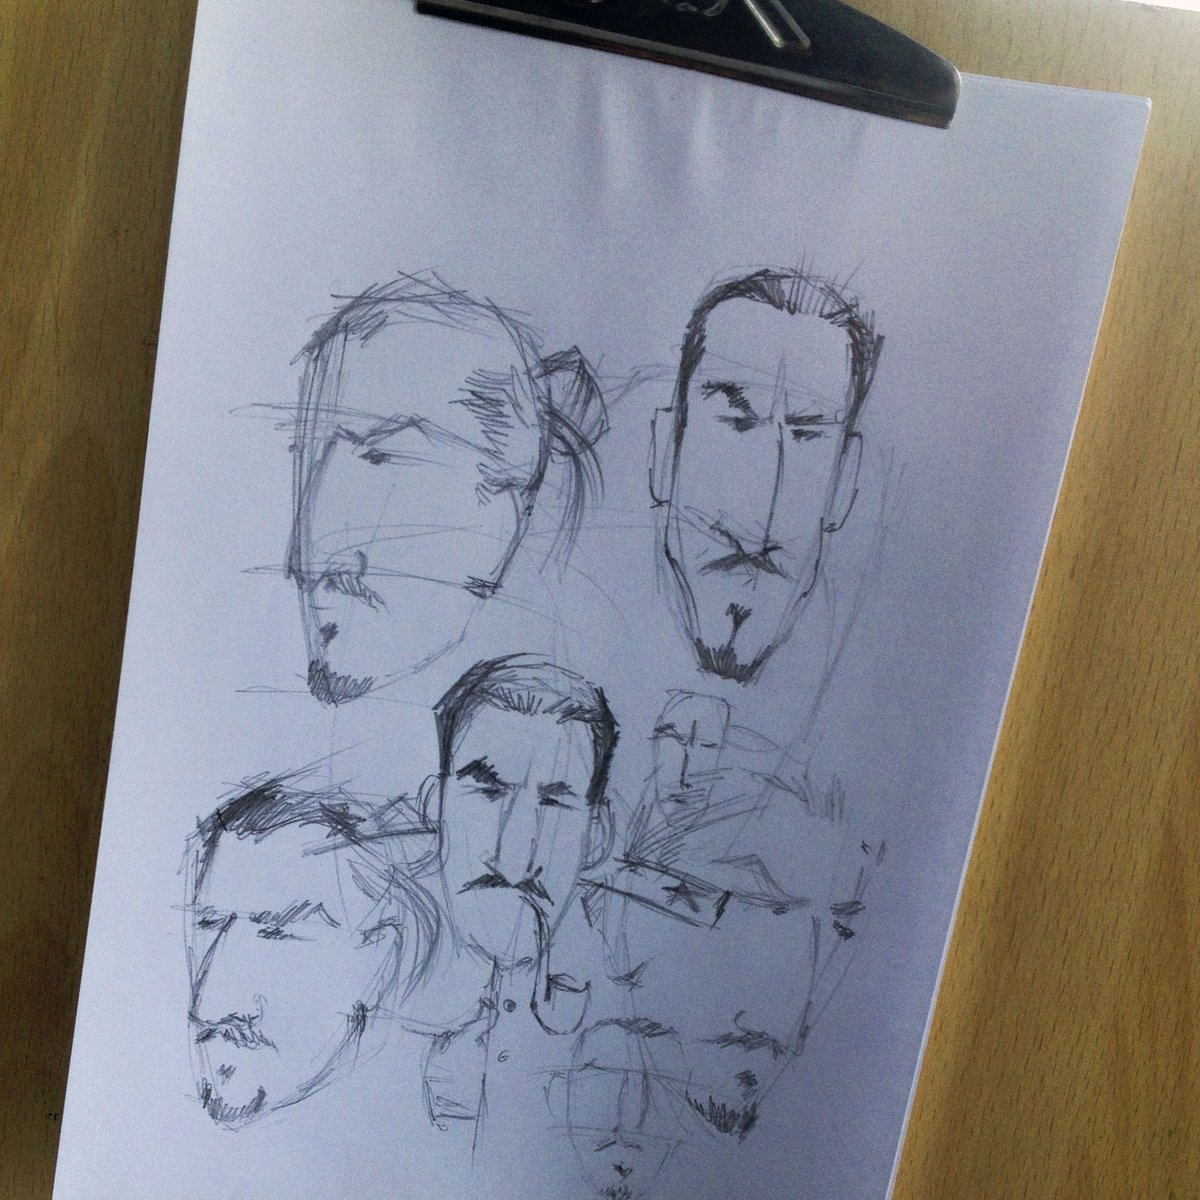 Oops..that&#39;s how you sit down to draw Zlatan t-shirt sketch and get Stalin instead #mufc #RedDevils #manutd #Zlatan <br>http://pic.twitter.com/a0BHcxlrhb